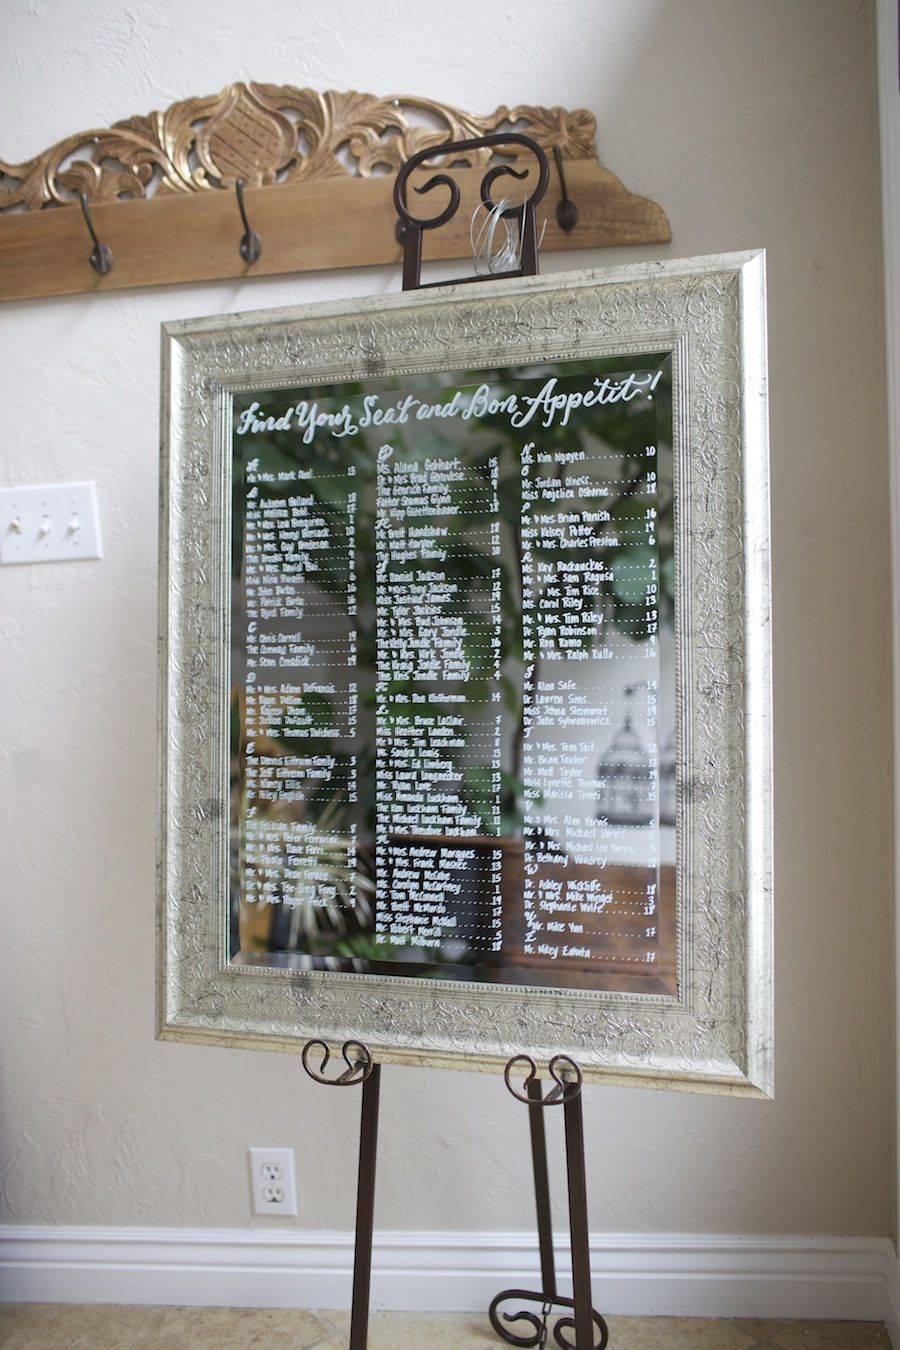 Large Silverleaf Mirror Hand Painted As A Wedding Seating Chart Custom Display Find Your Seat And Bon E